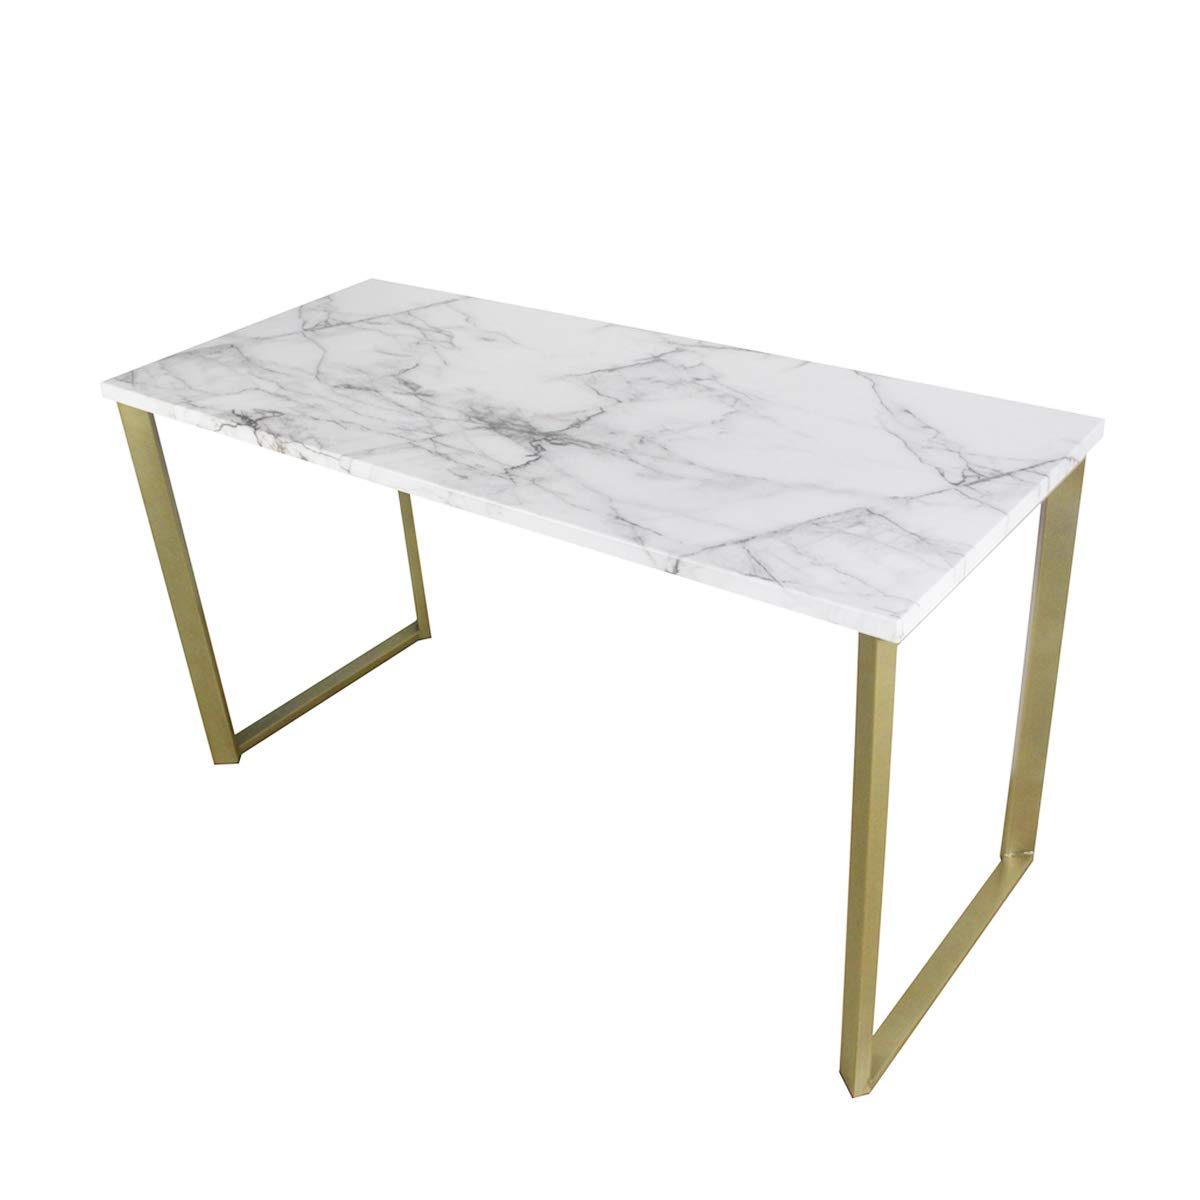 Roomfitters Marble Print Top Writing Desks/Workstation for Home Office, Gold Legs, 55.1'' W